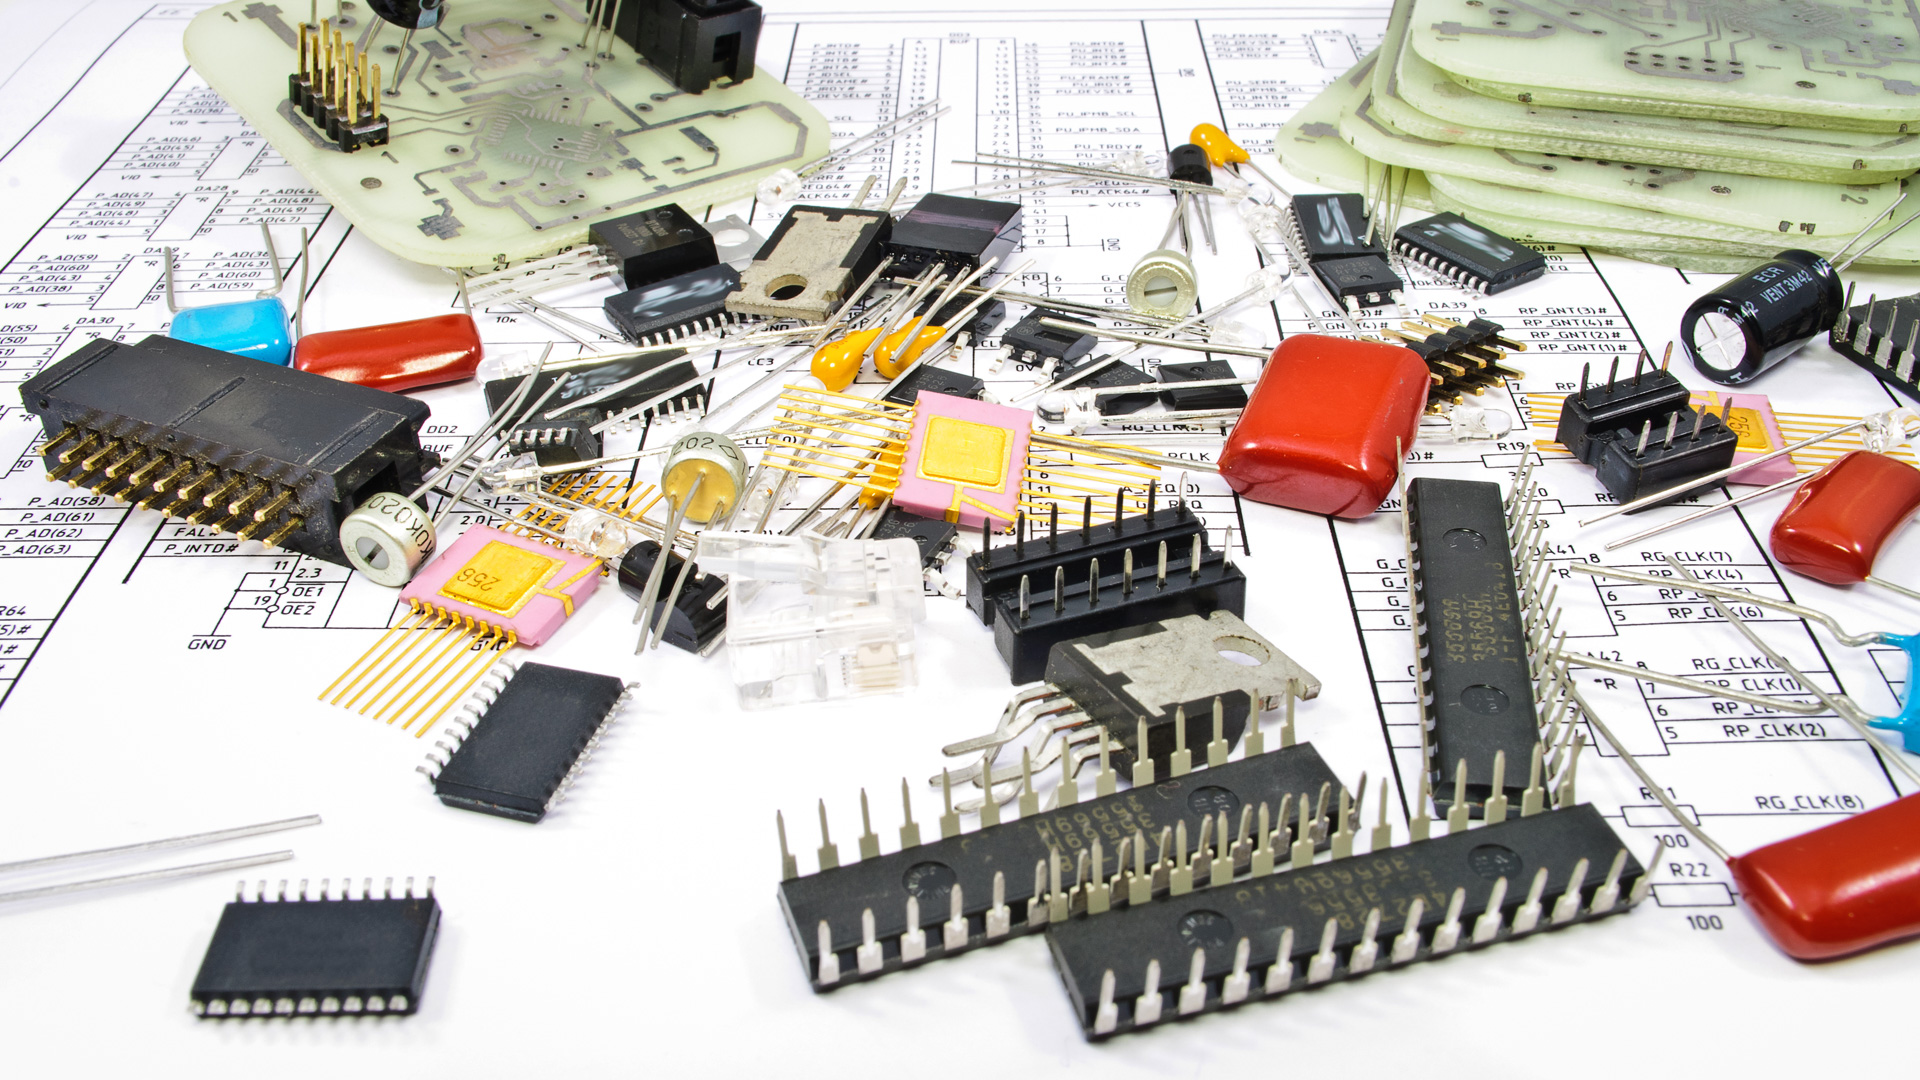 Evatronix Required Documentation Printed Circuit Board Pcb Assembly 1